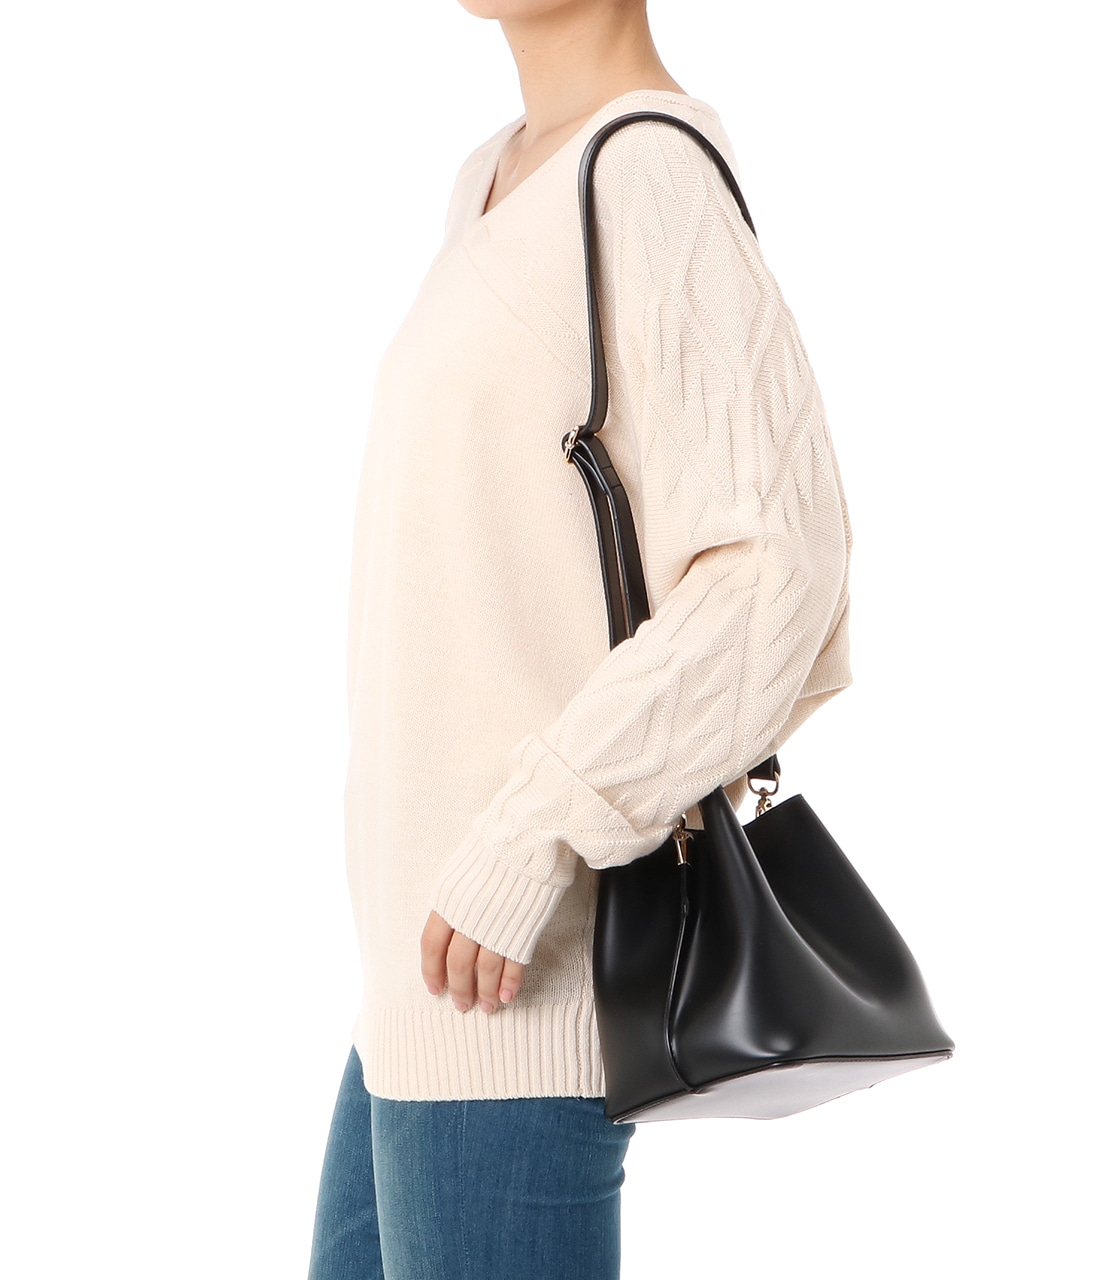 【AZUL BY MOUSSY】mini2wayポシェット 詳細画像 BLK 9